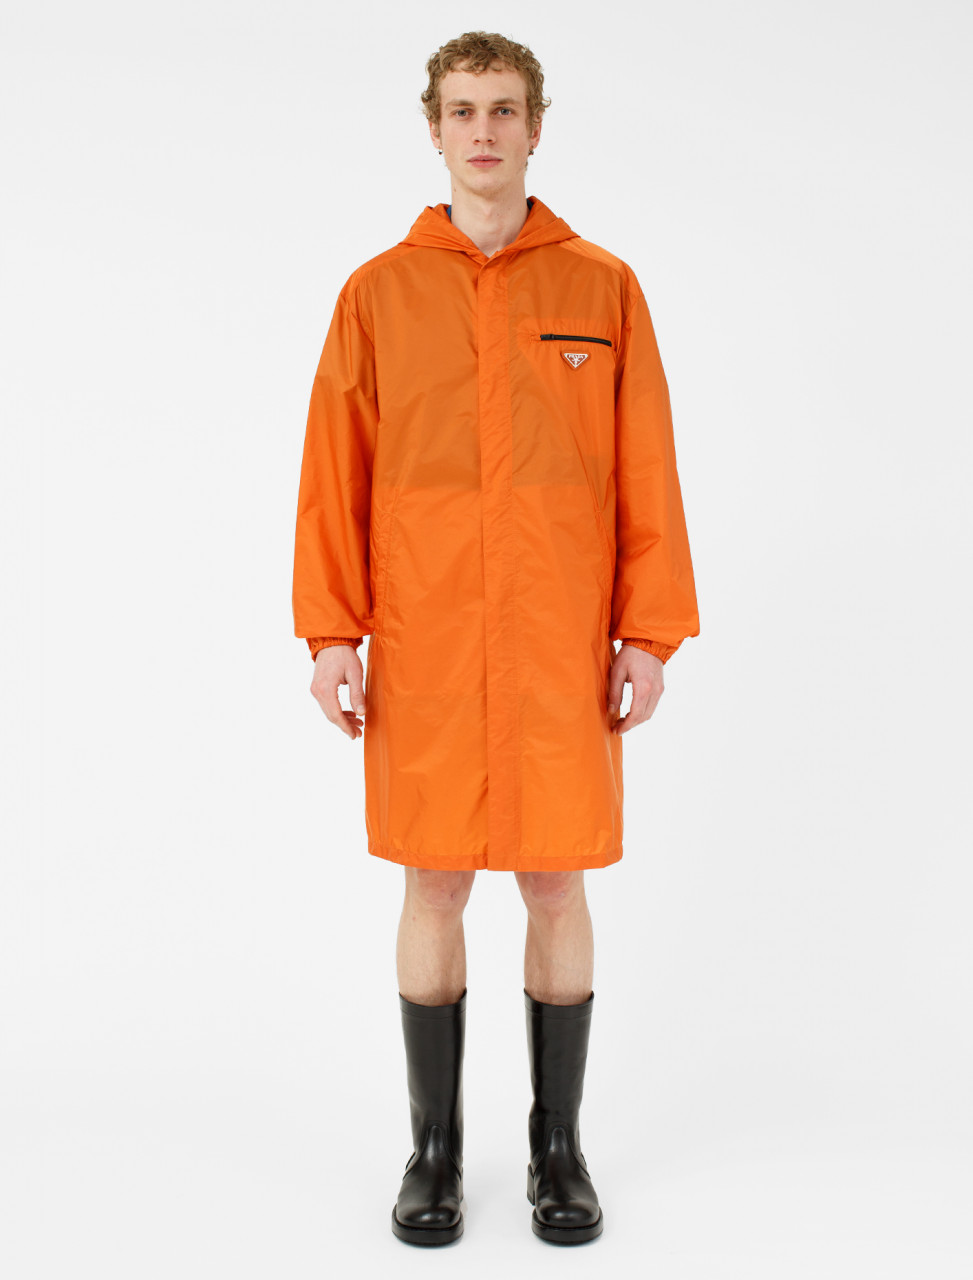 Nylon Raincoat with Backpack Compartment